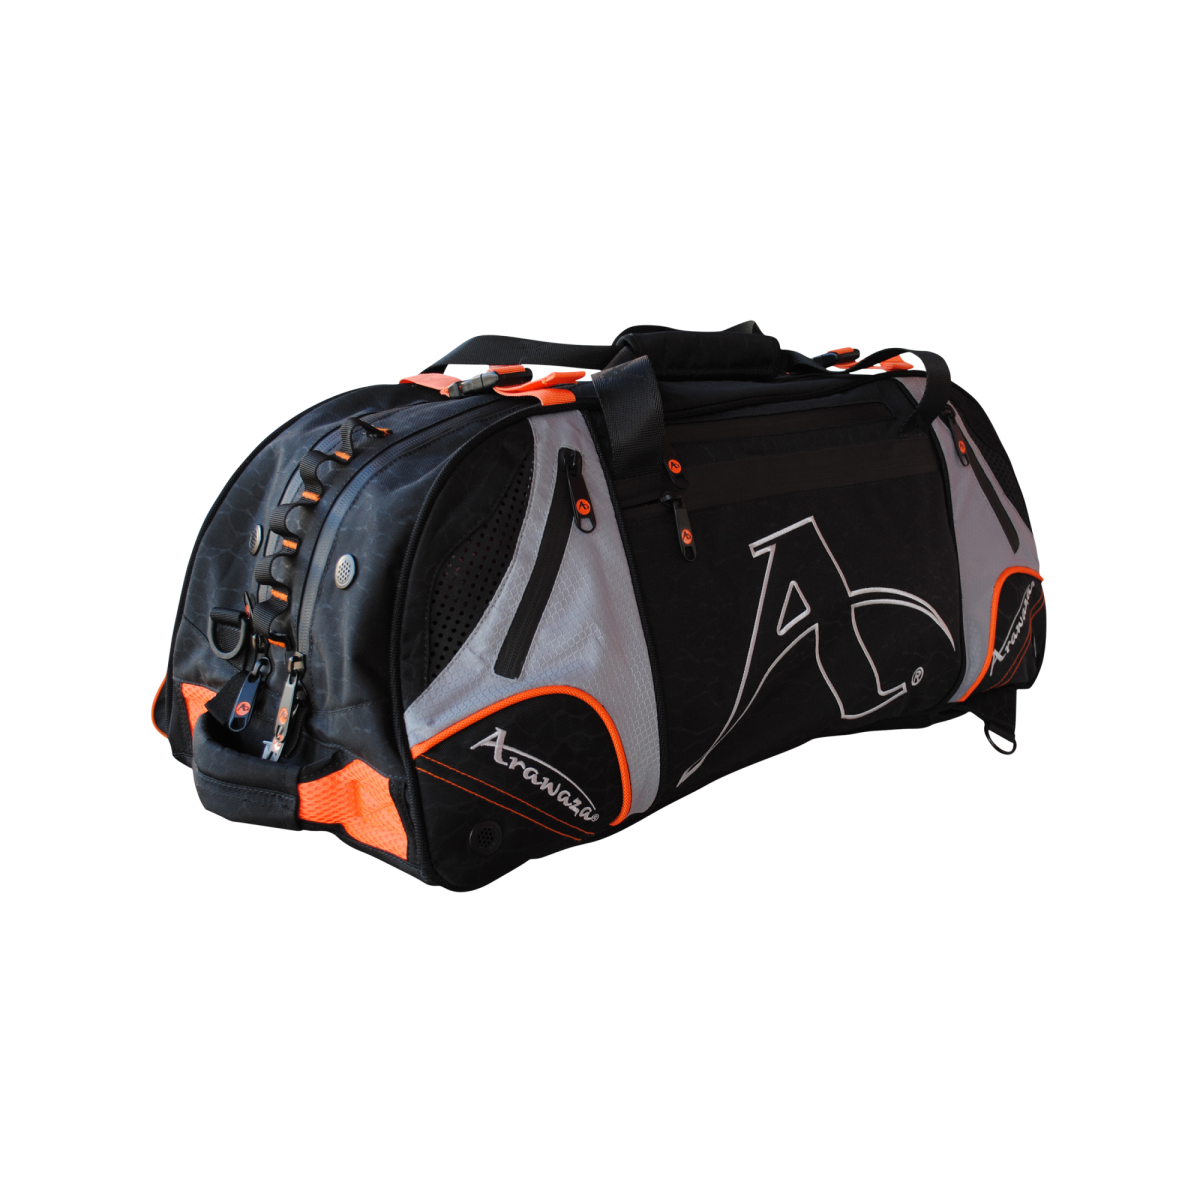 Сумка Arawaza Technical Sport Bag Backpack размер M